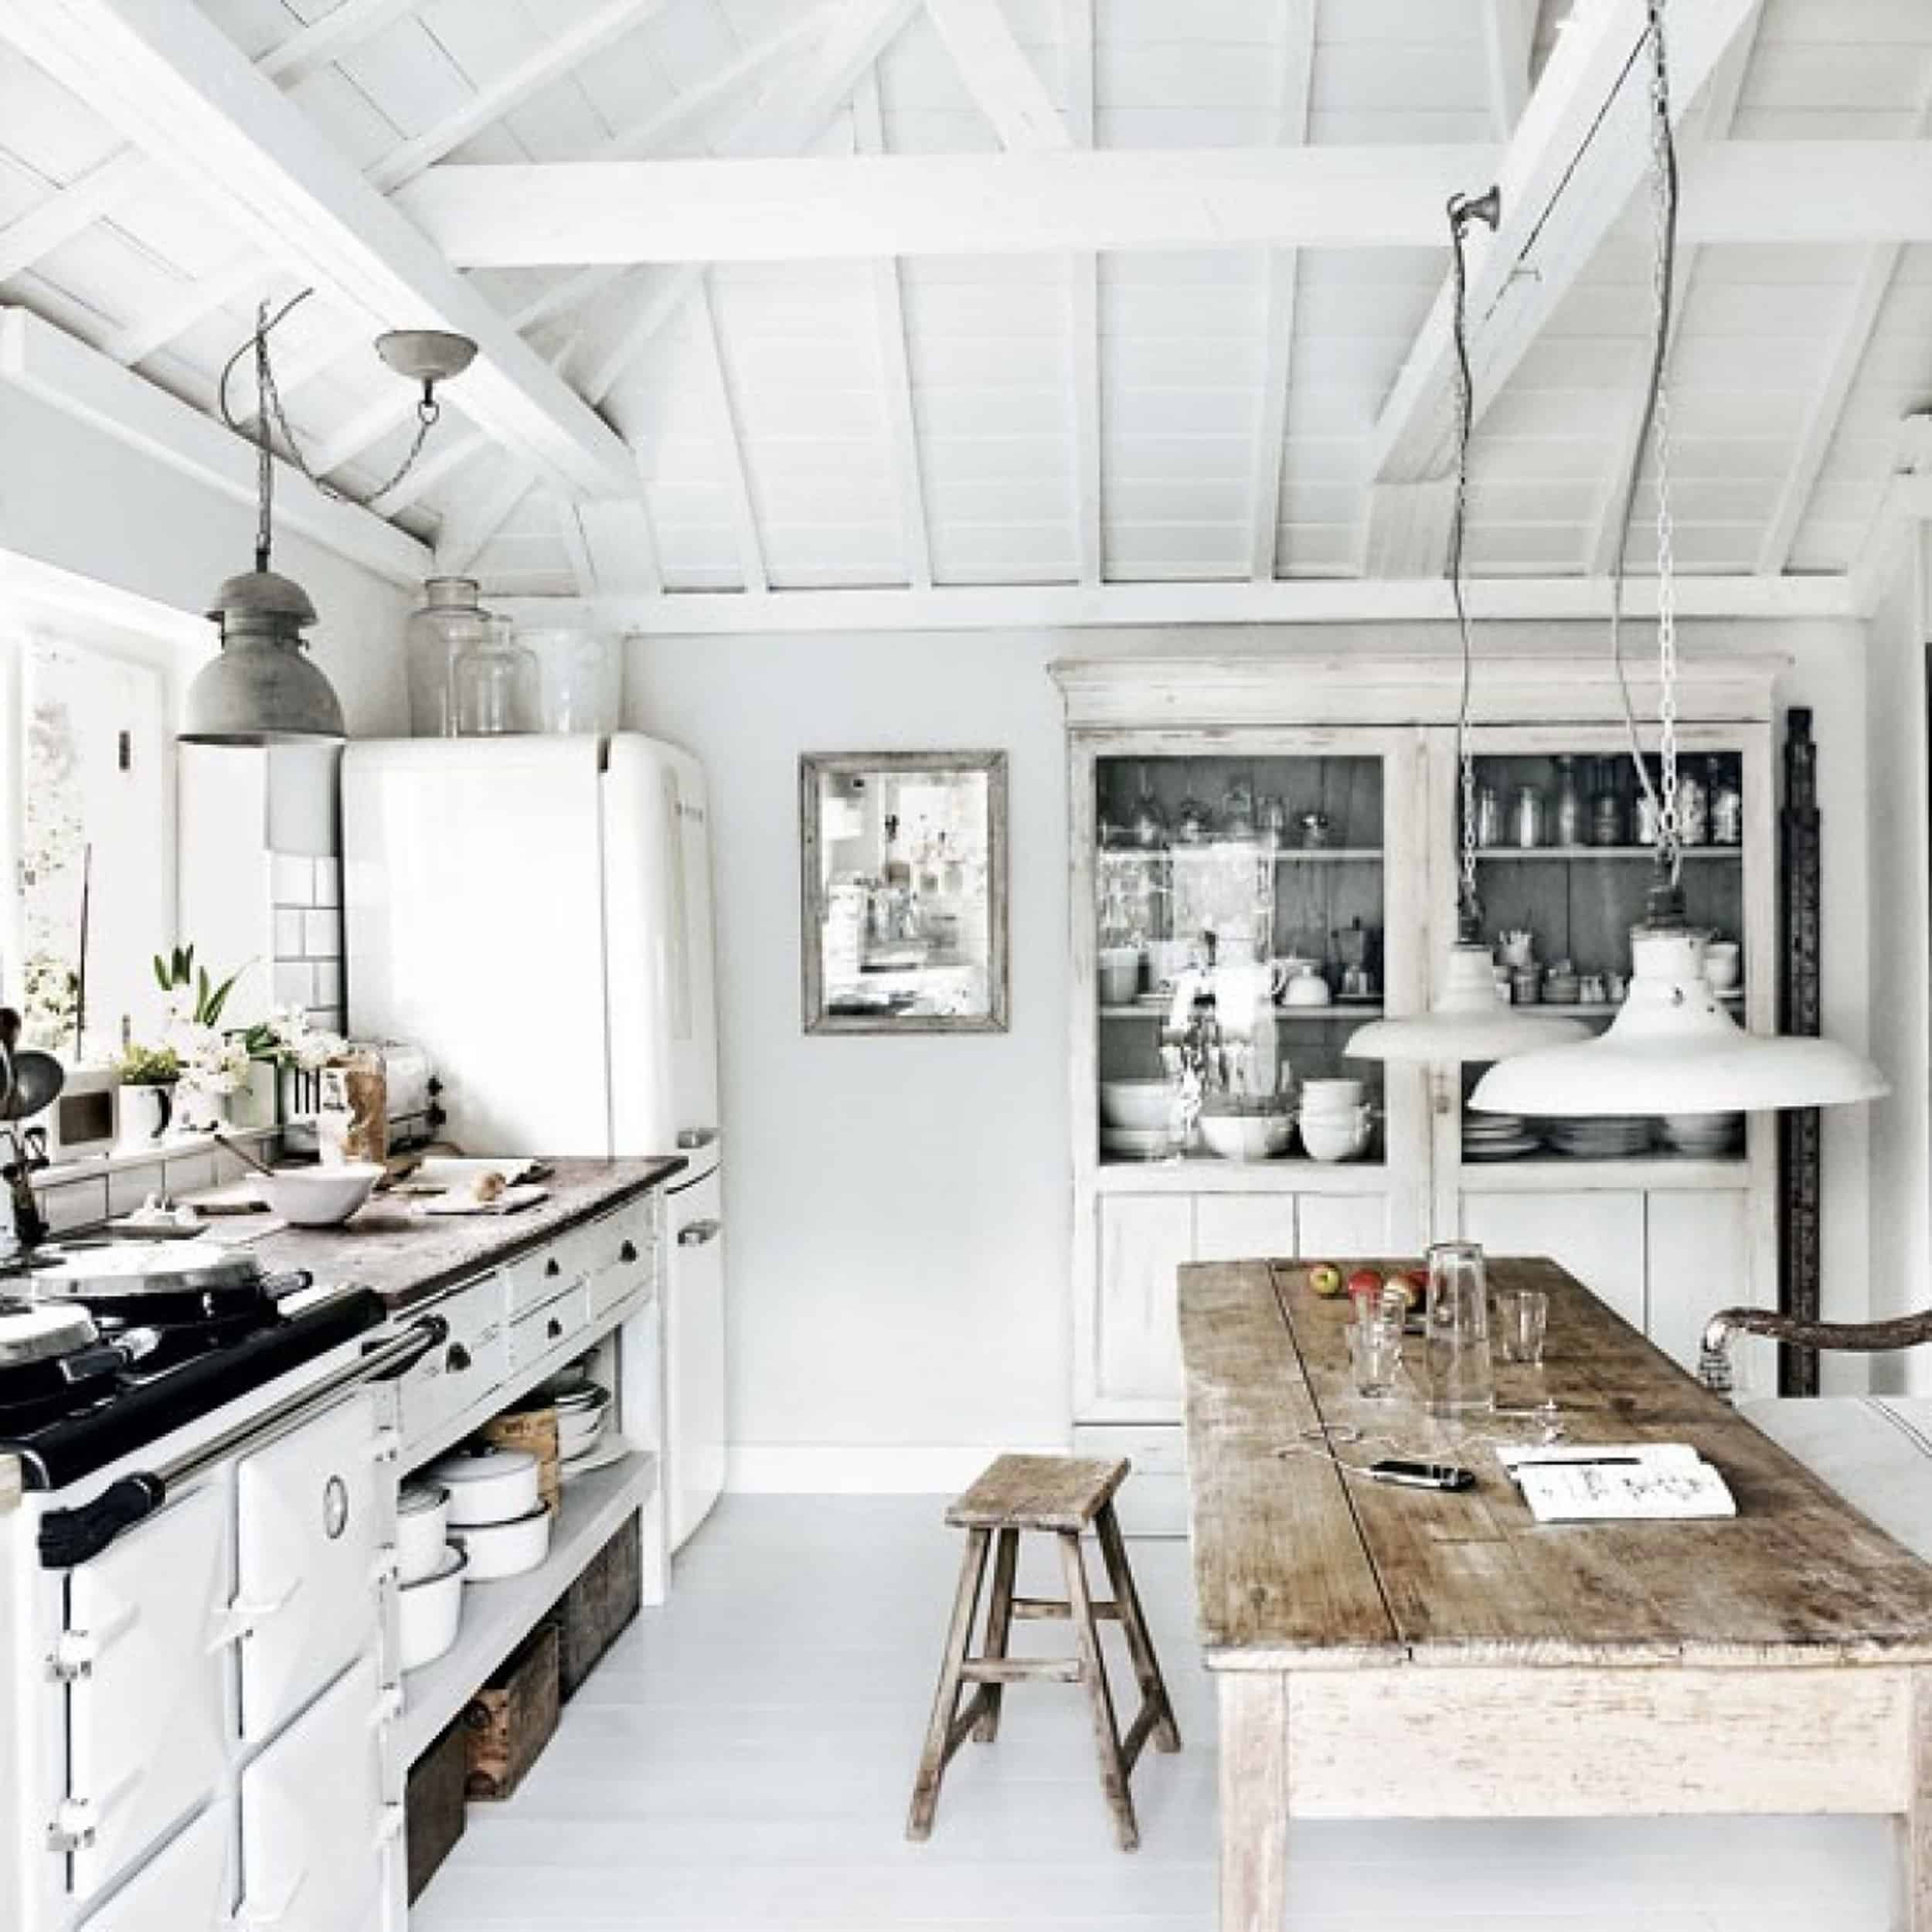 Emily Henderson Mountain Fixer Upper I Design You Decide 5 Styles Whimsical Scandinavian Cottage 02